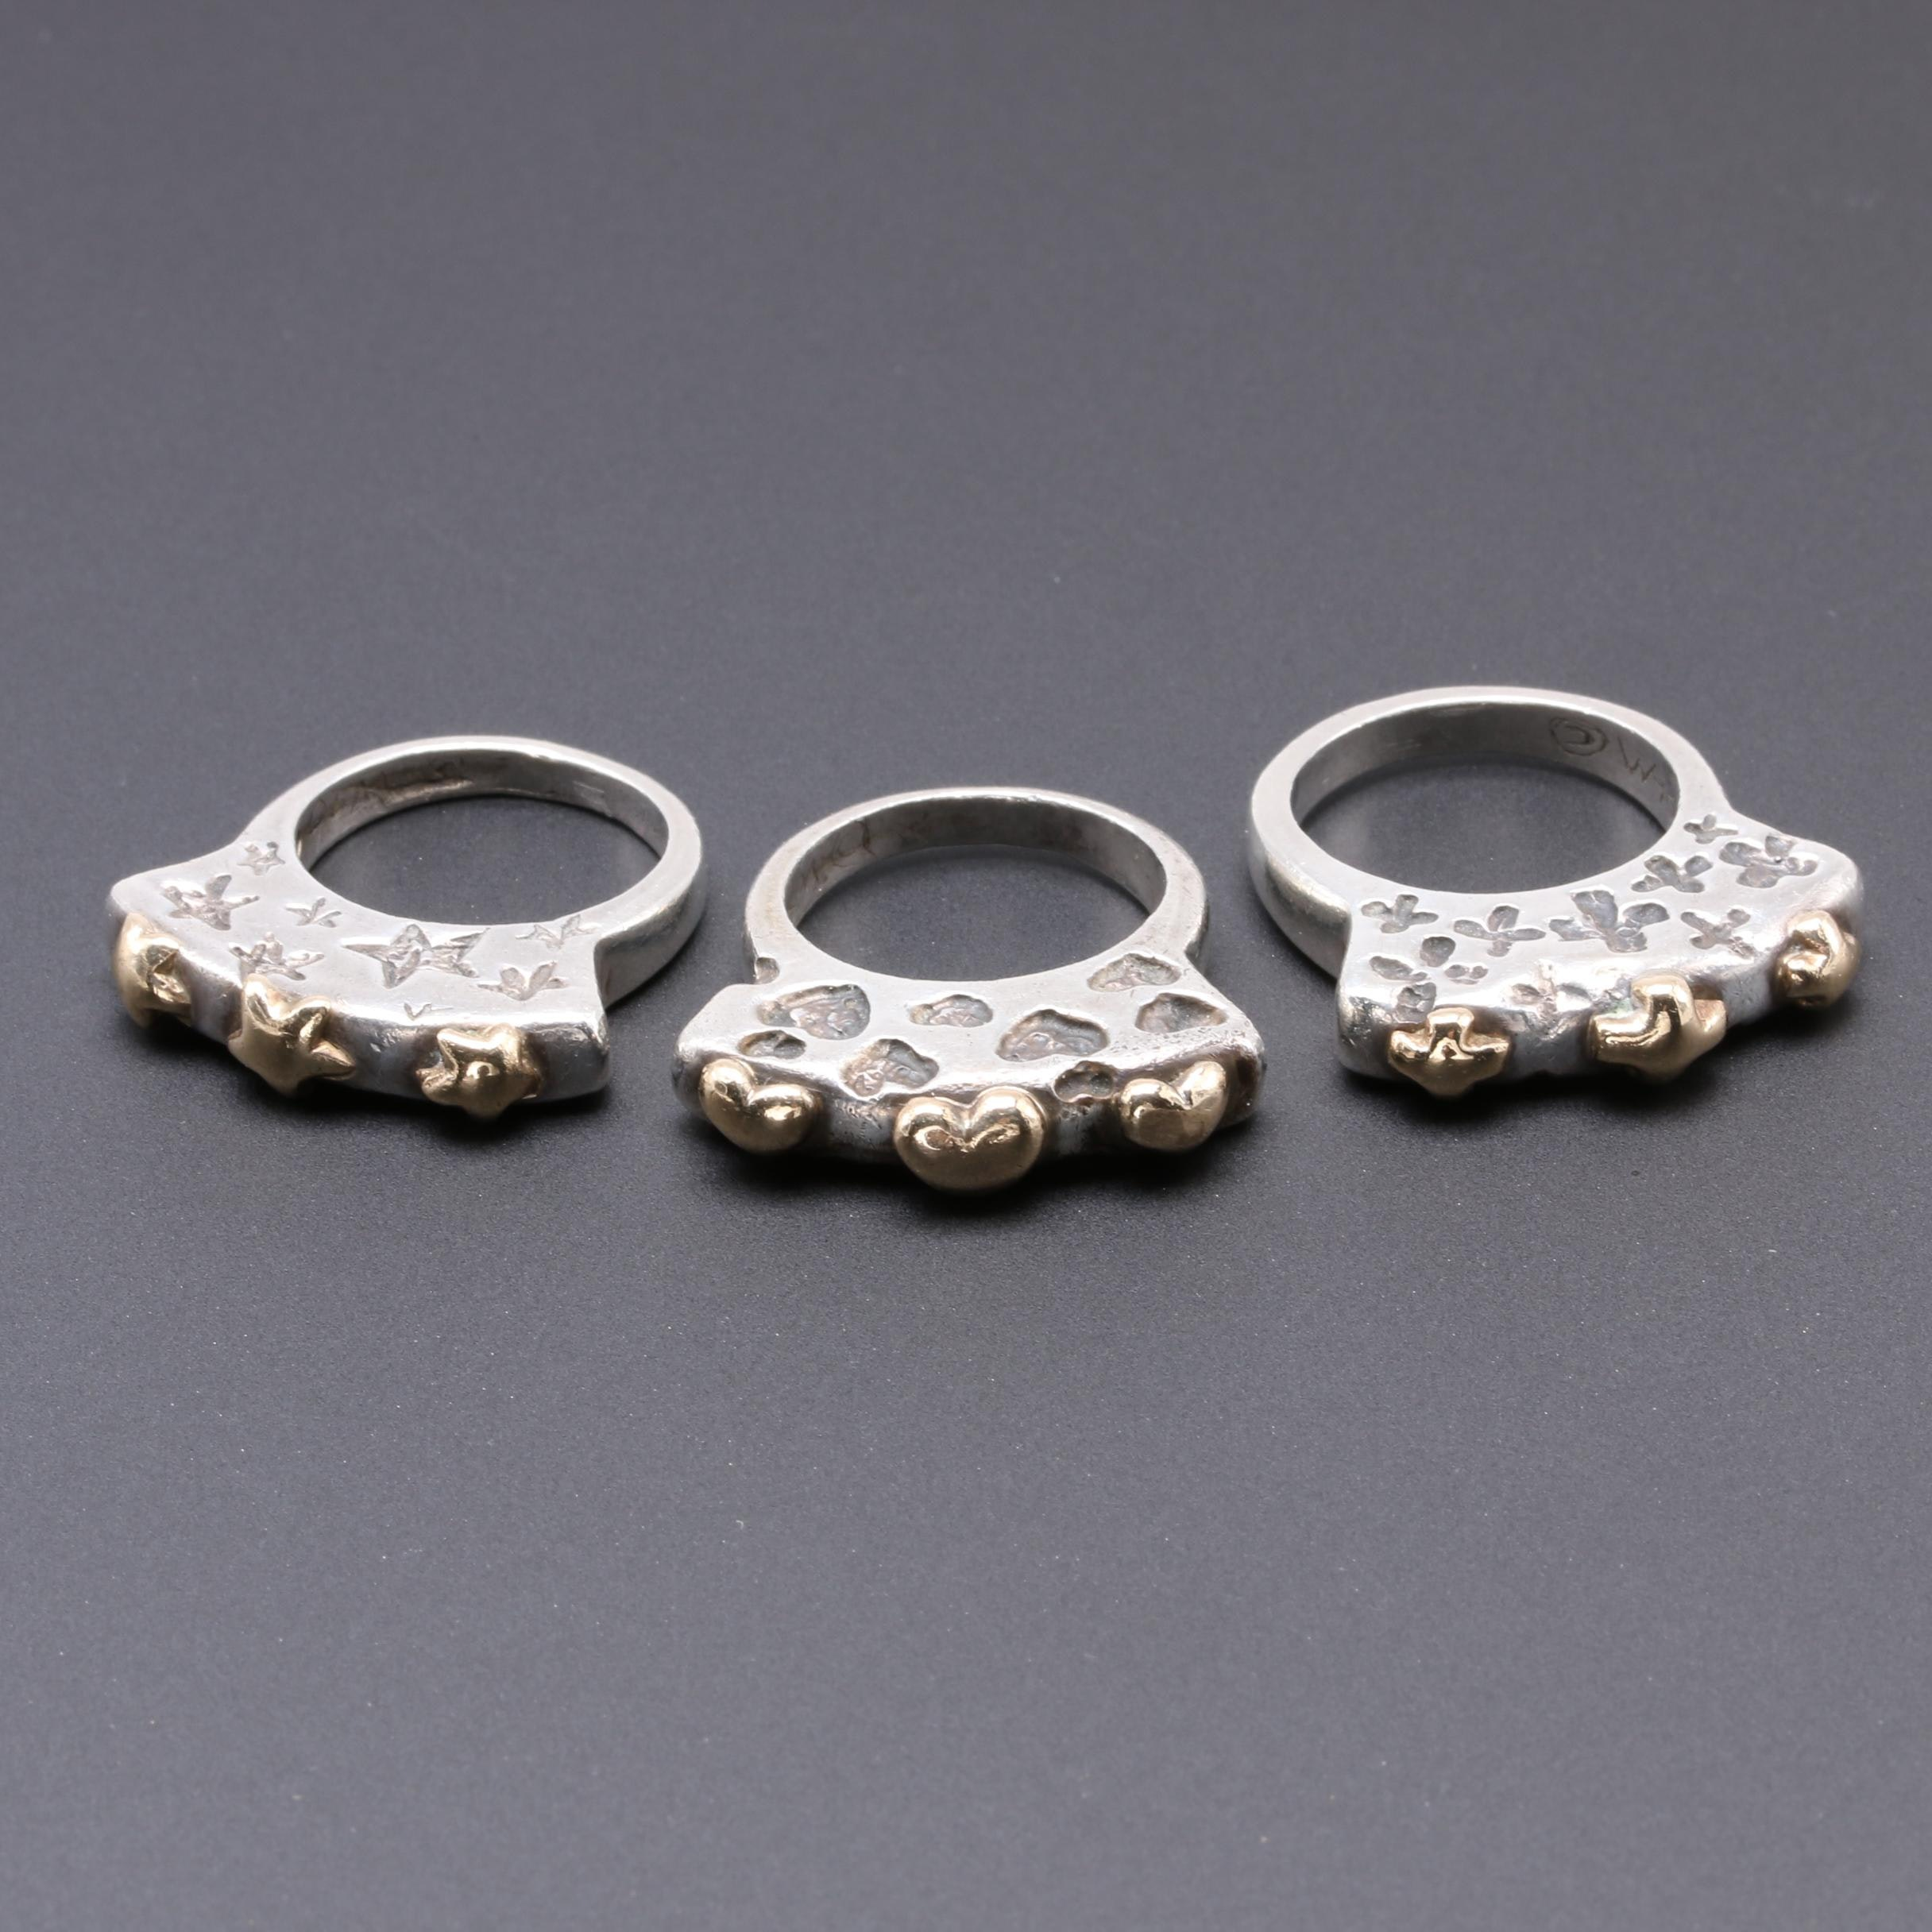 Sterling Silver Heart, Star and Flower Flat Crown Rings with 14K Accents